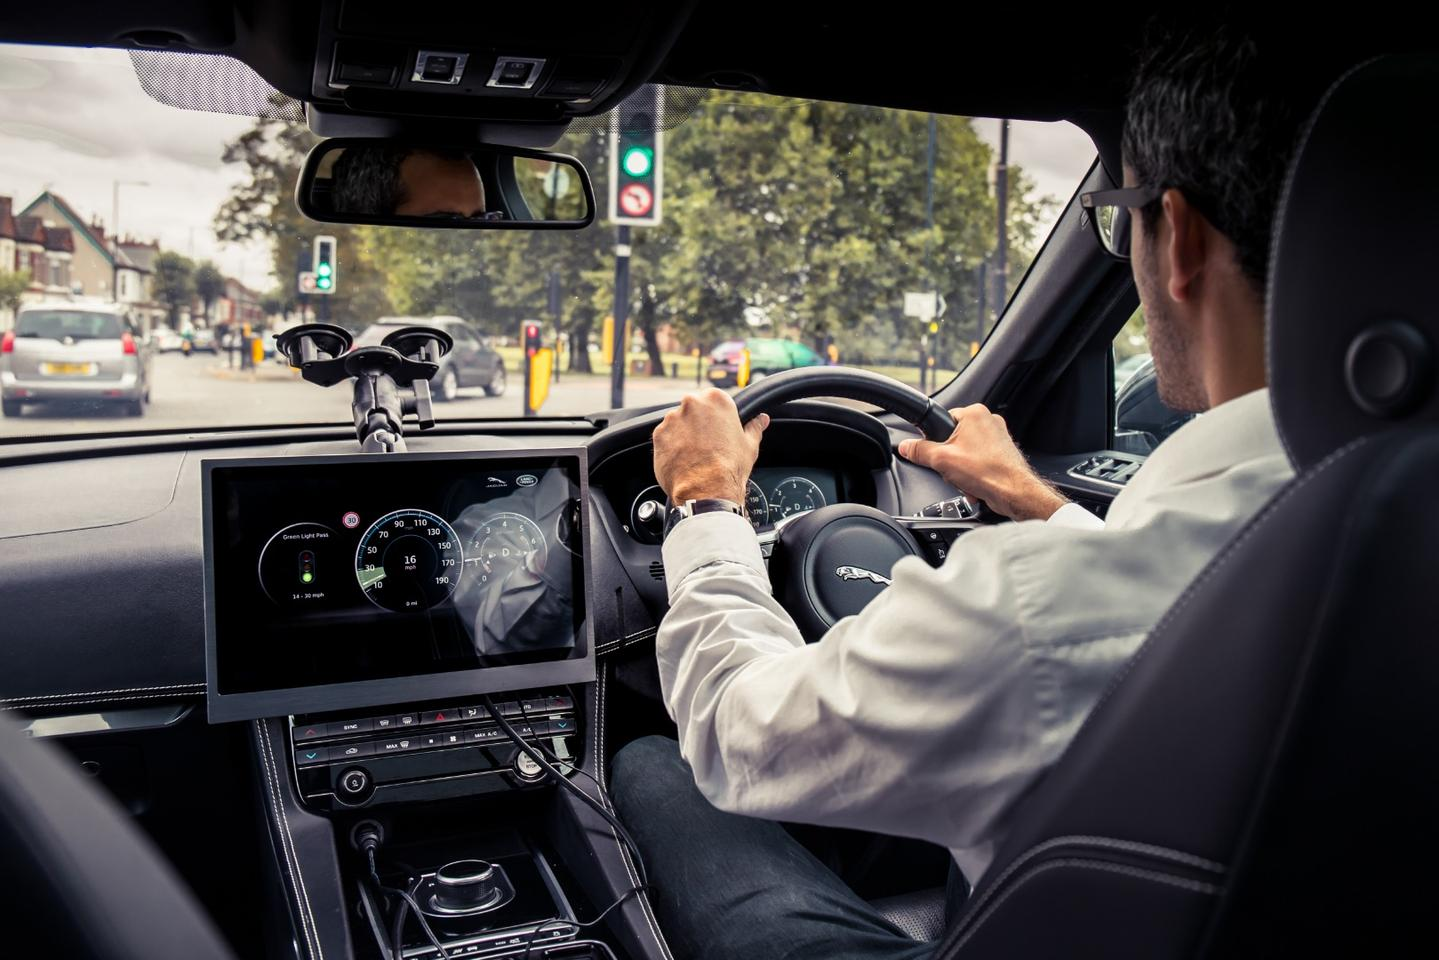 Vehicle-to-infrastructure communications will form a crucial part of anyautonomous driving architecture